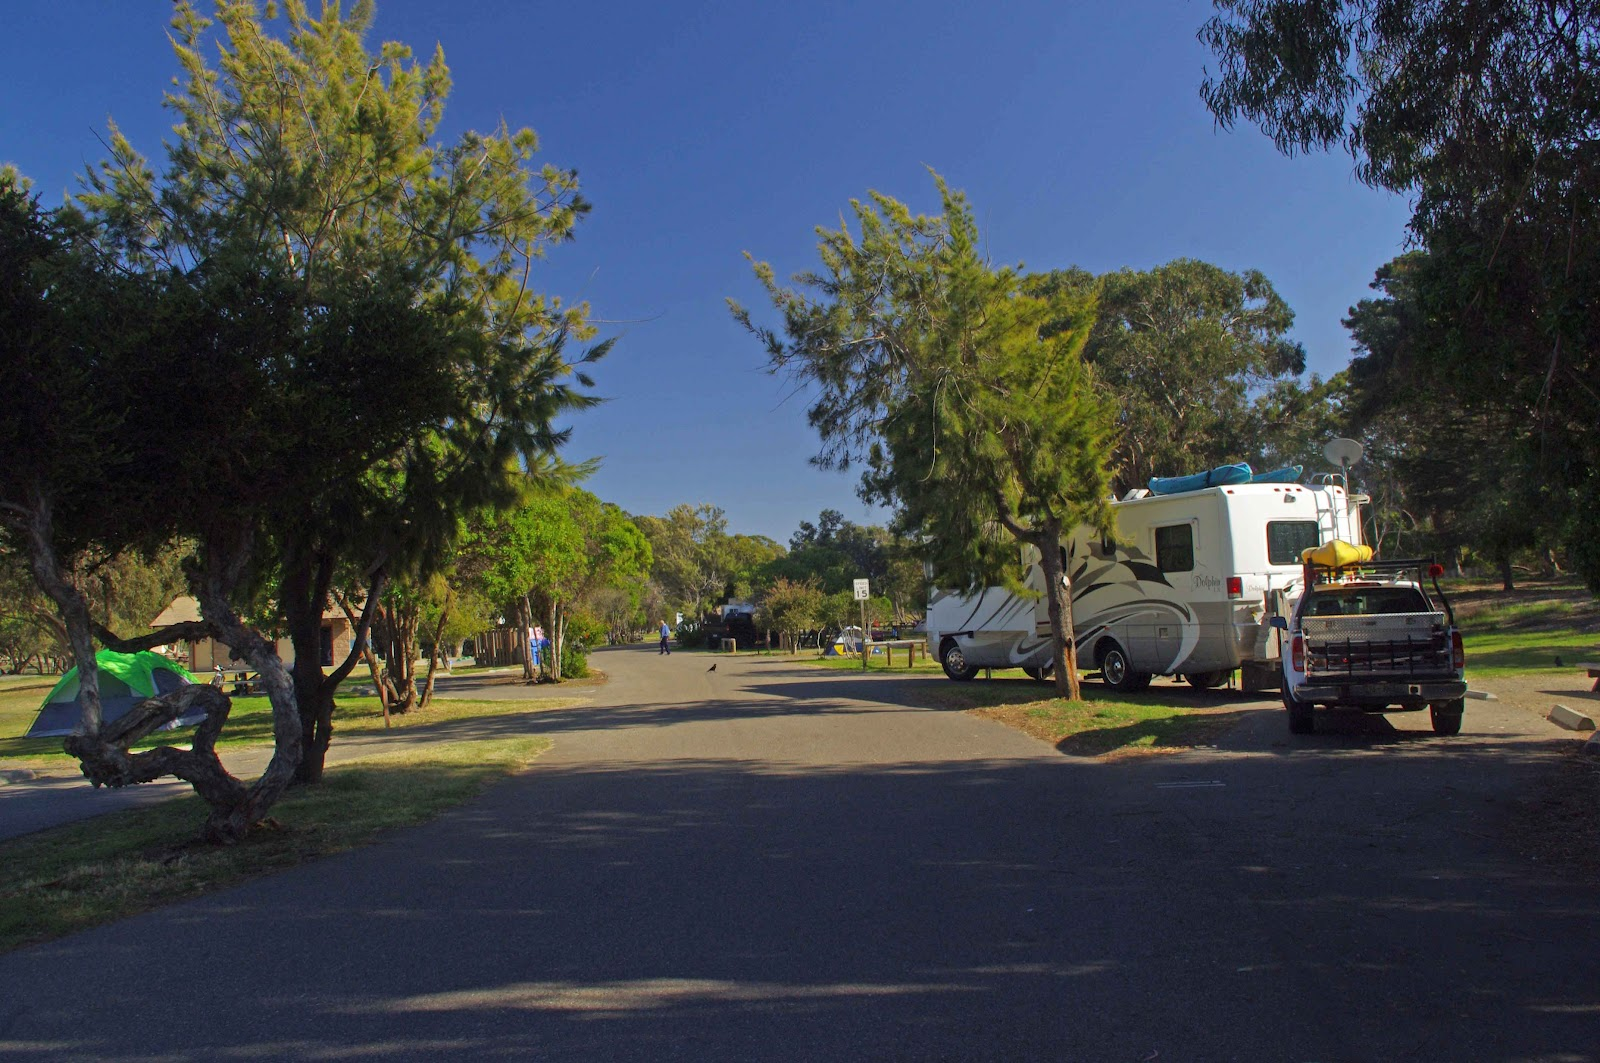 pismo beach buddhist dating site Top things to do in avila beach, california: see tripadvisor's 4,280 traveller reviews and photos of avila beach tourist attractions find what to do today, this weekend, or in november we have reviews of the best places to see in avila beach visit top-rated & must-see attractions.